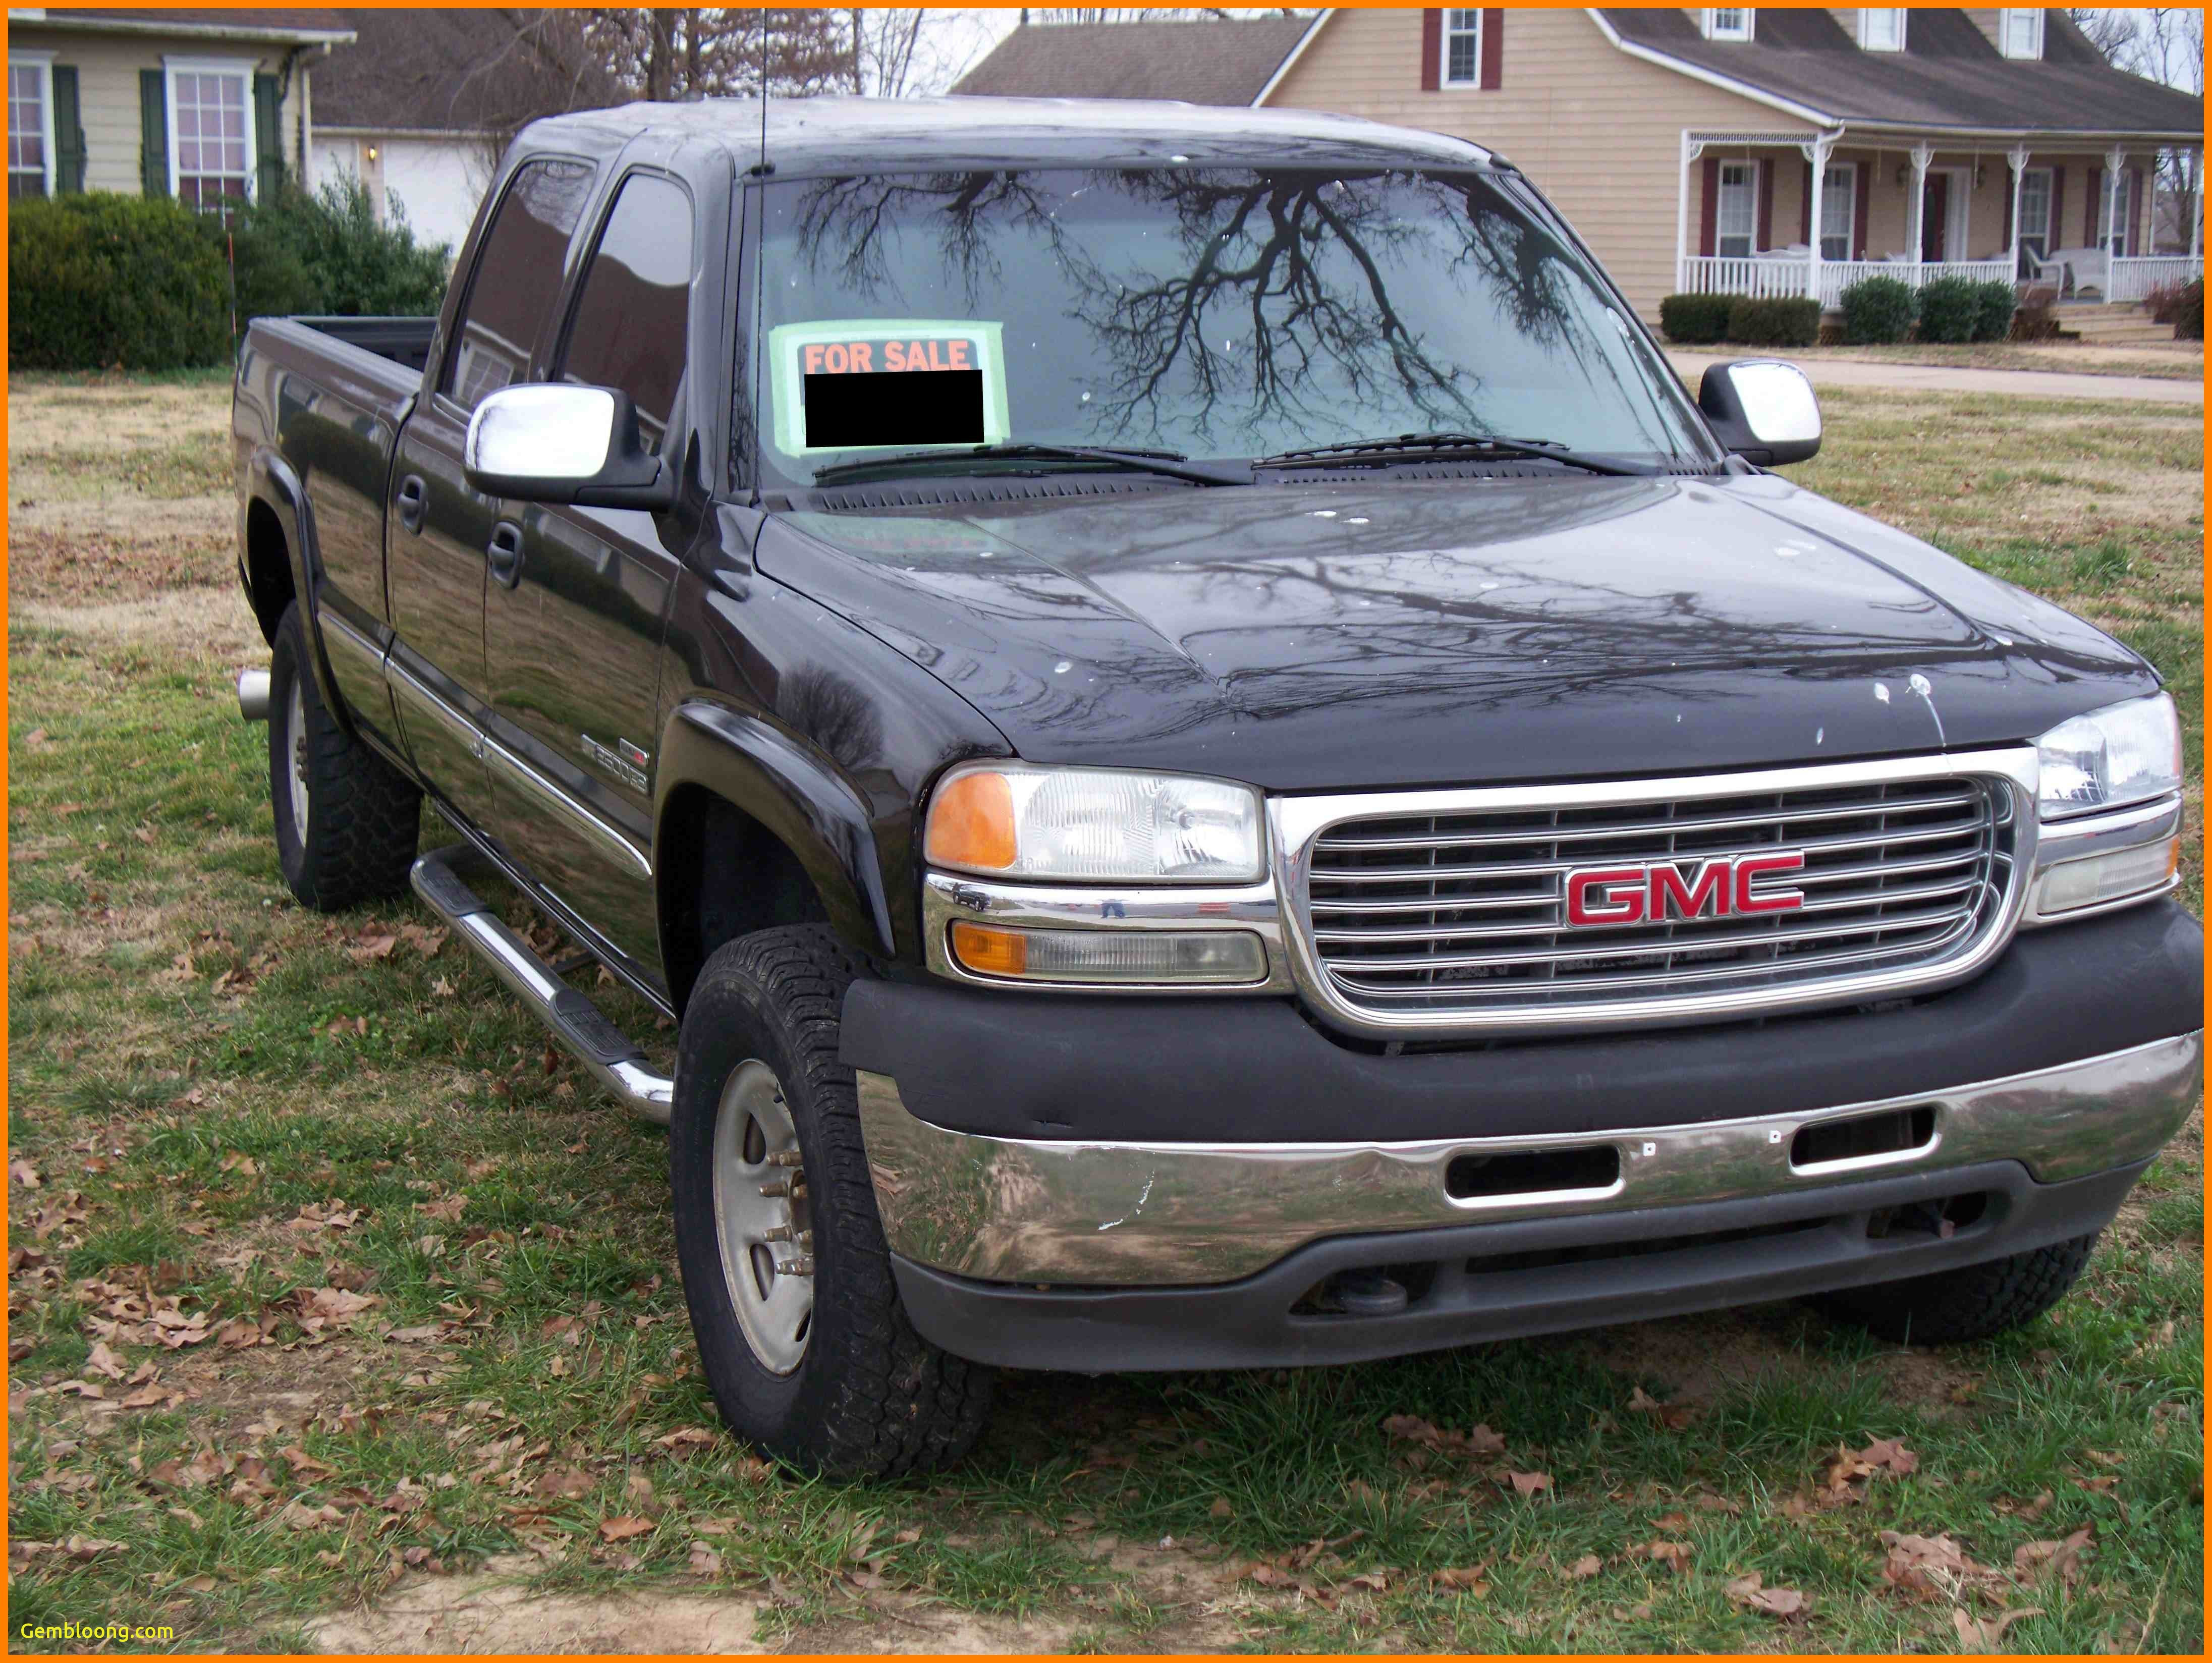 Craigslist Used Cars For Sale By Owner Near Me Ohio cars, trucks, quads or parts. craigslist used cars for sale by owner